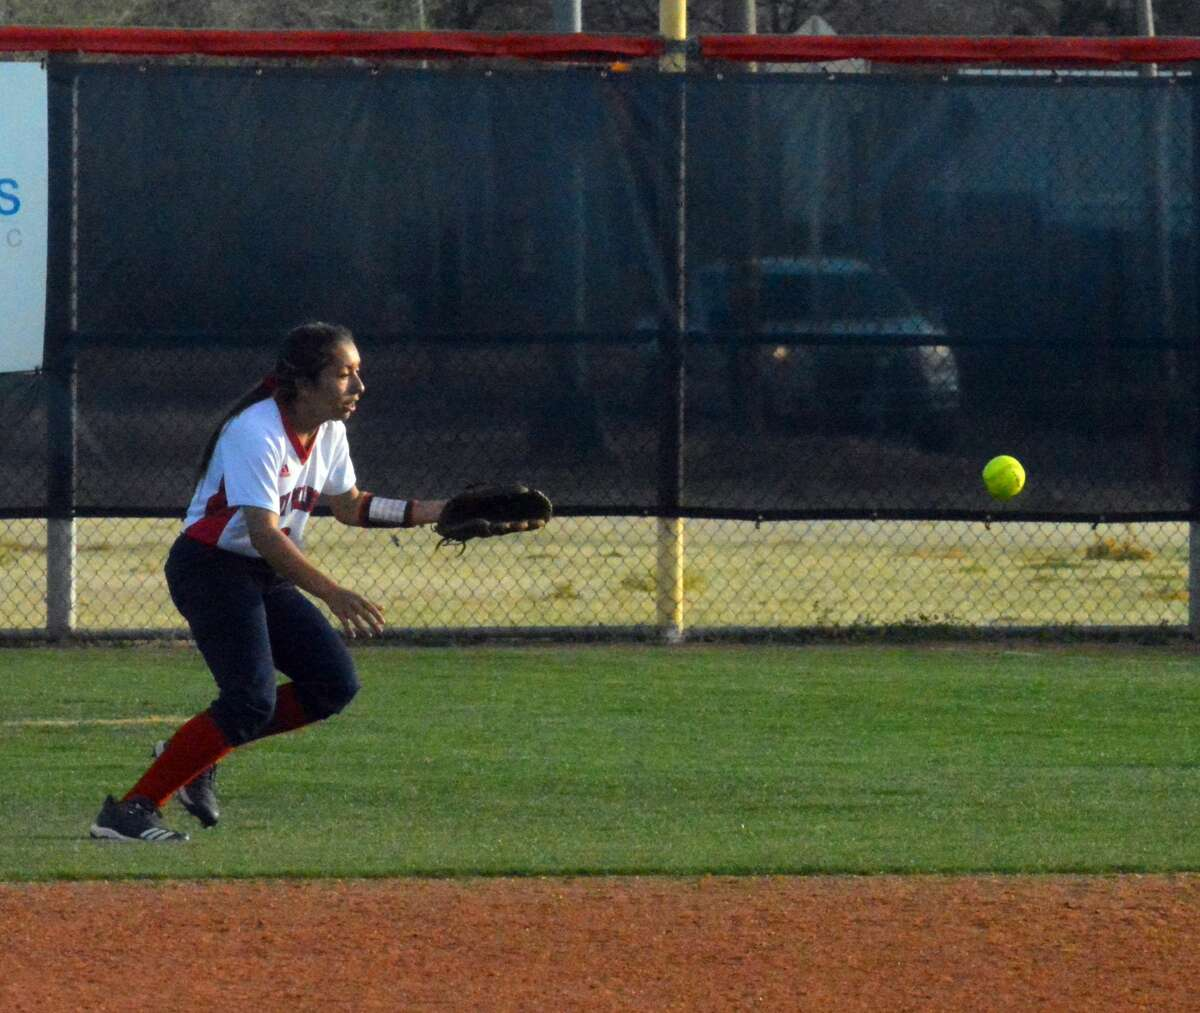 The Coronado Lady Mustangs powered a 12-run sixth inning to beat the Plainview Lady Bulldogs, 17-1, in six innings during District 3-5A action on Tuesday in Plainview.